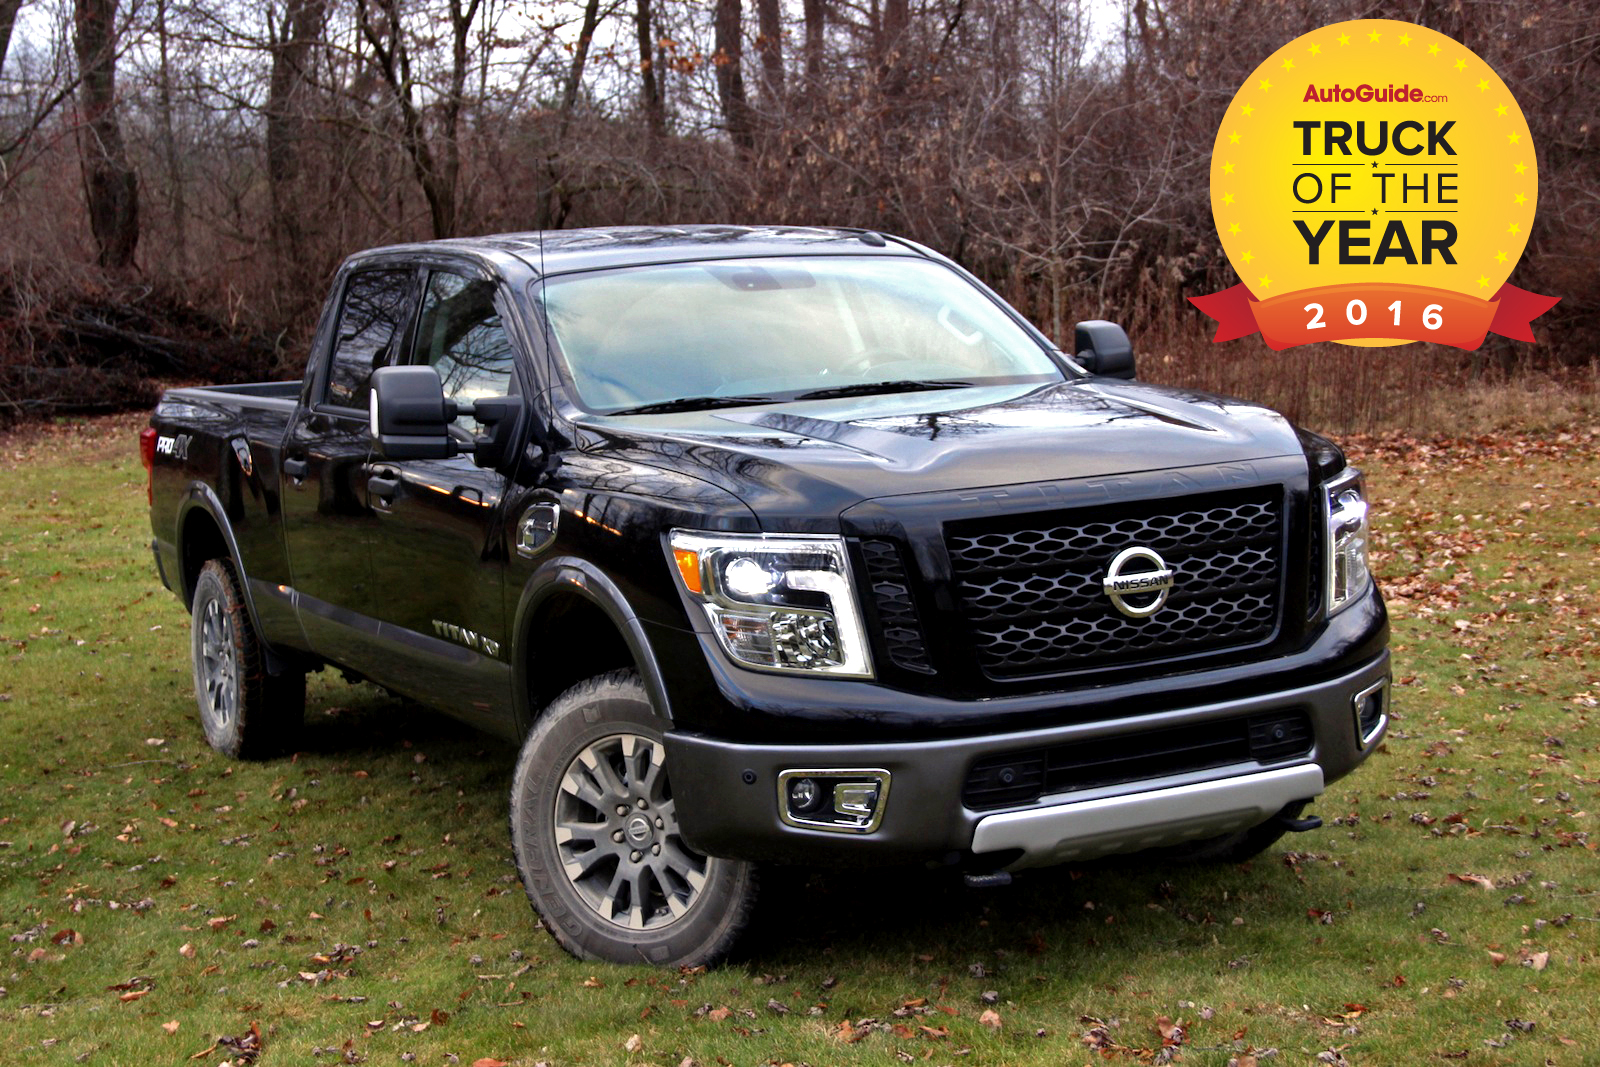 2016 Autoguide Truck Of The Year Winner